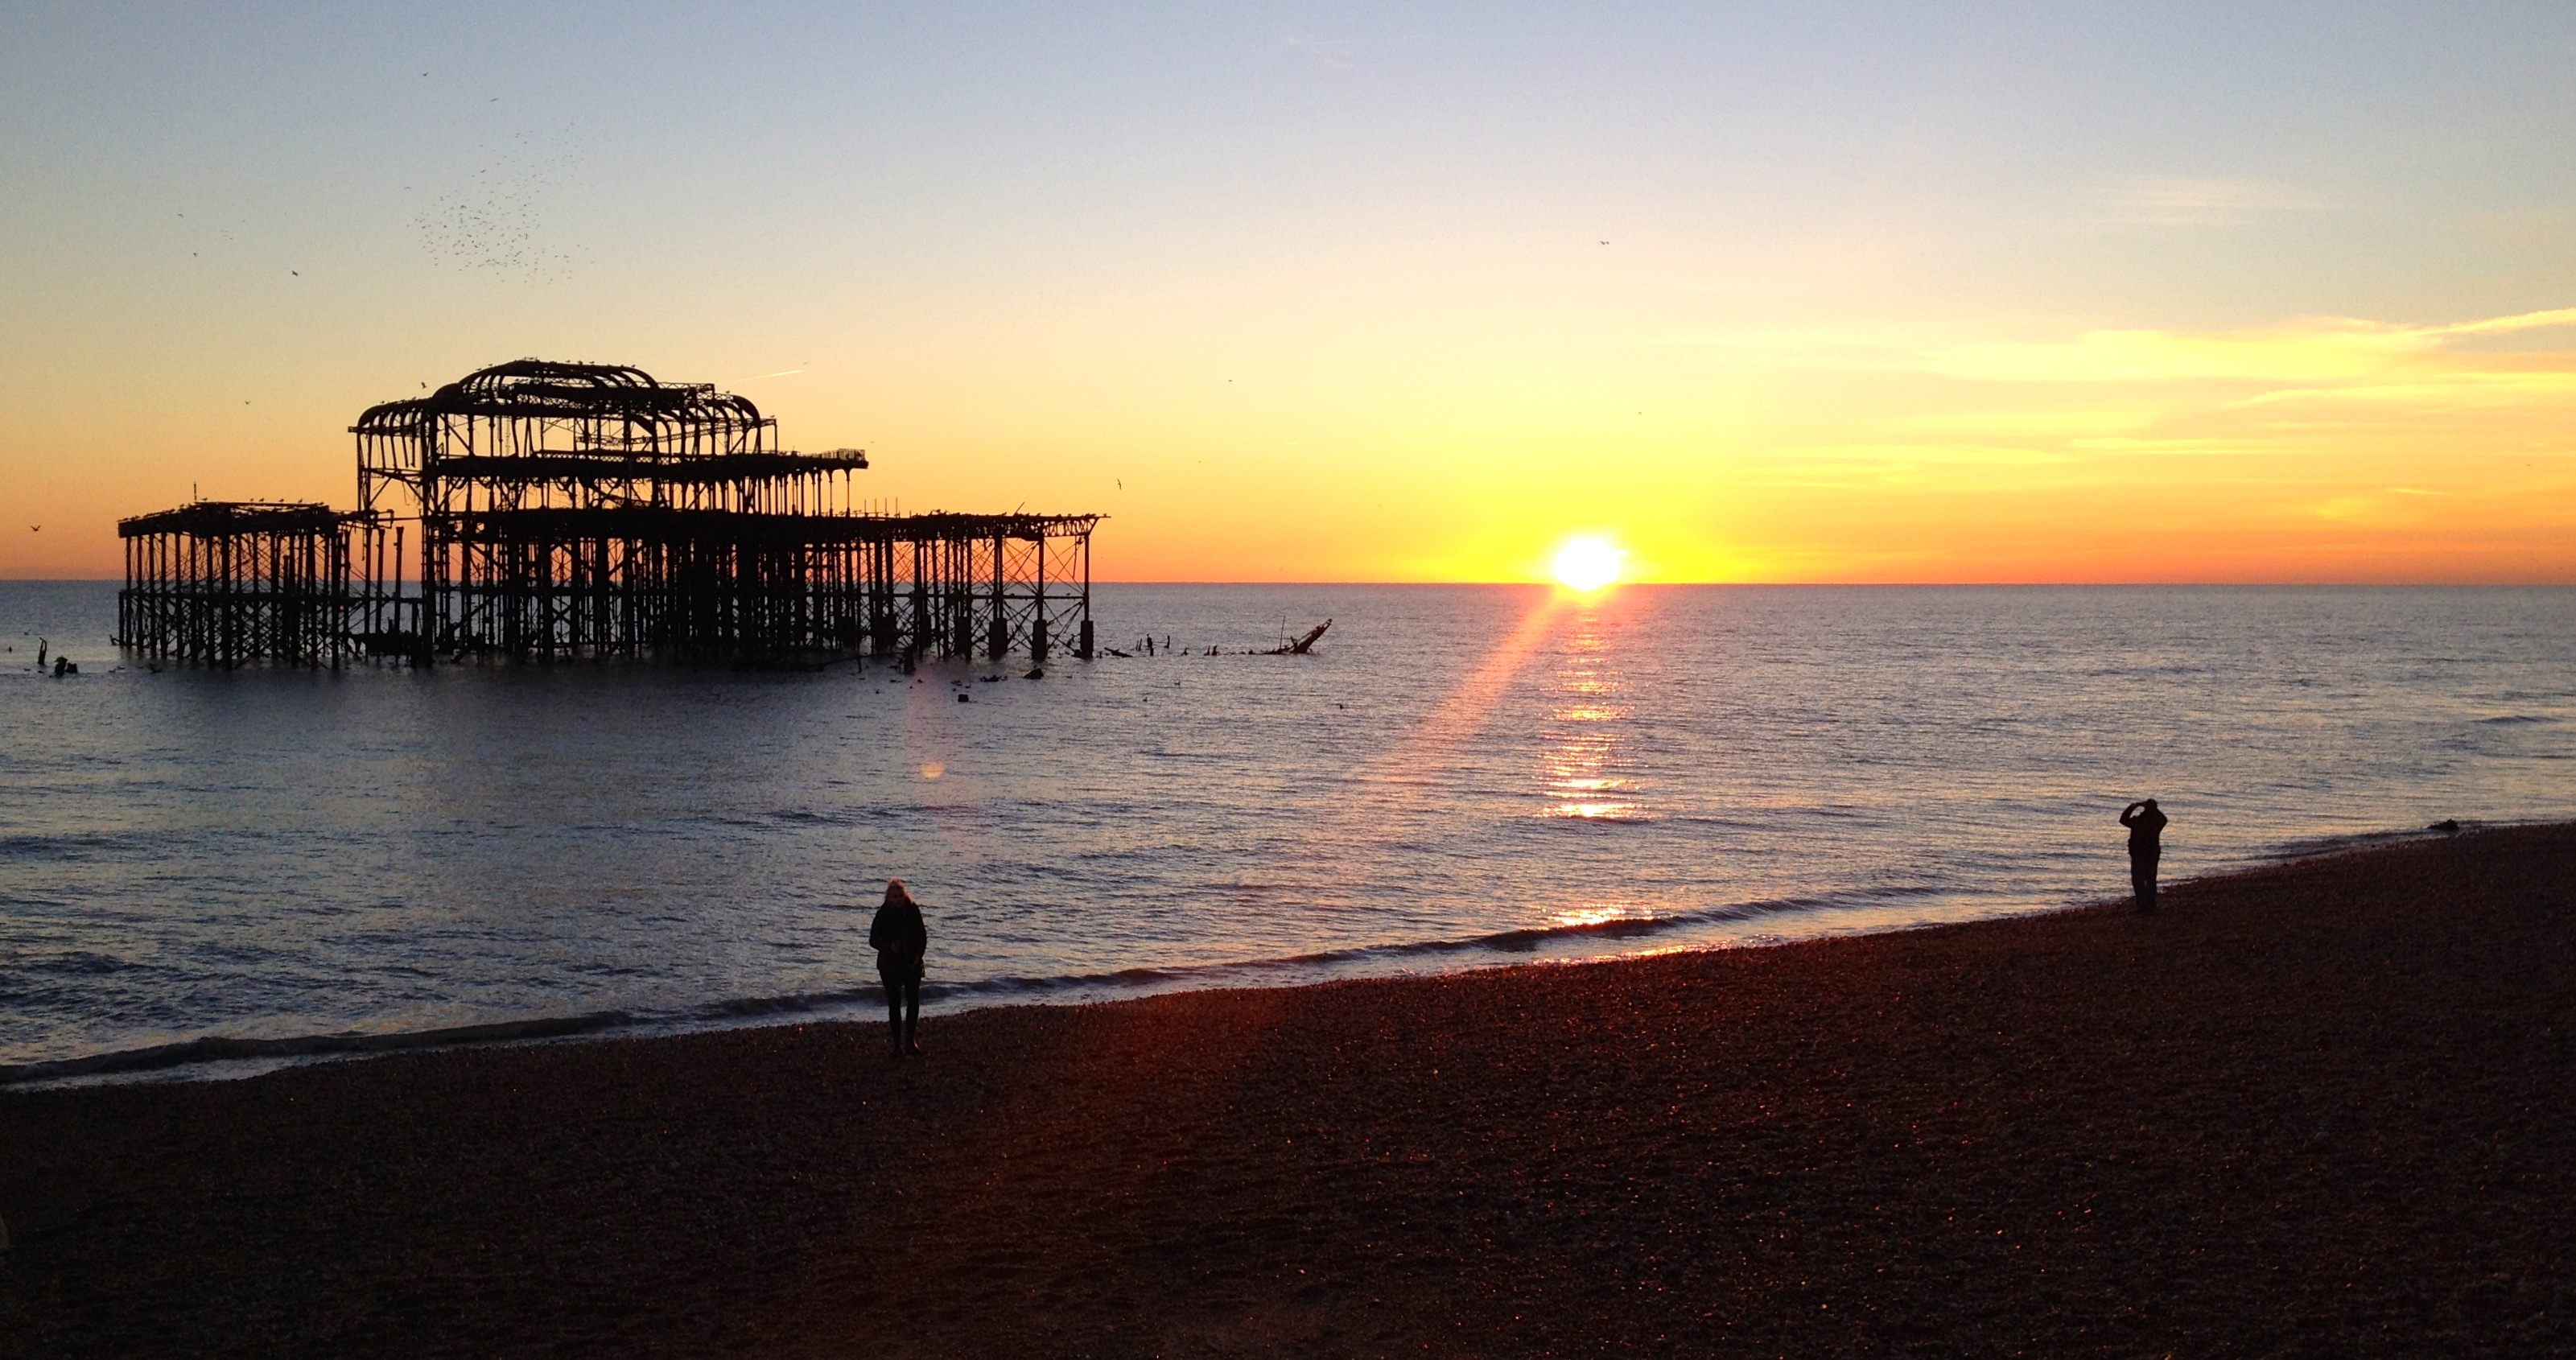 Brighton old pier sunset